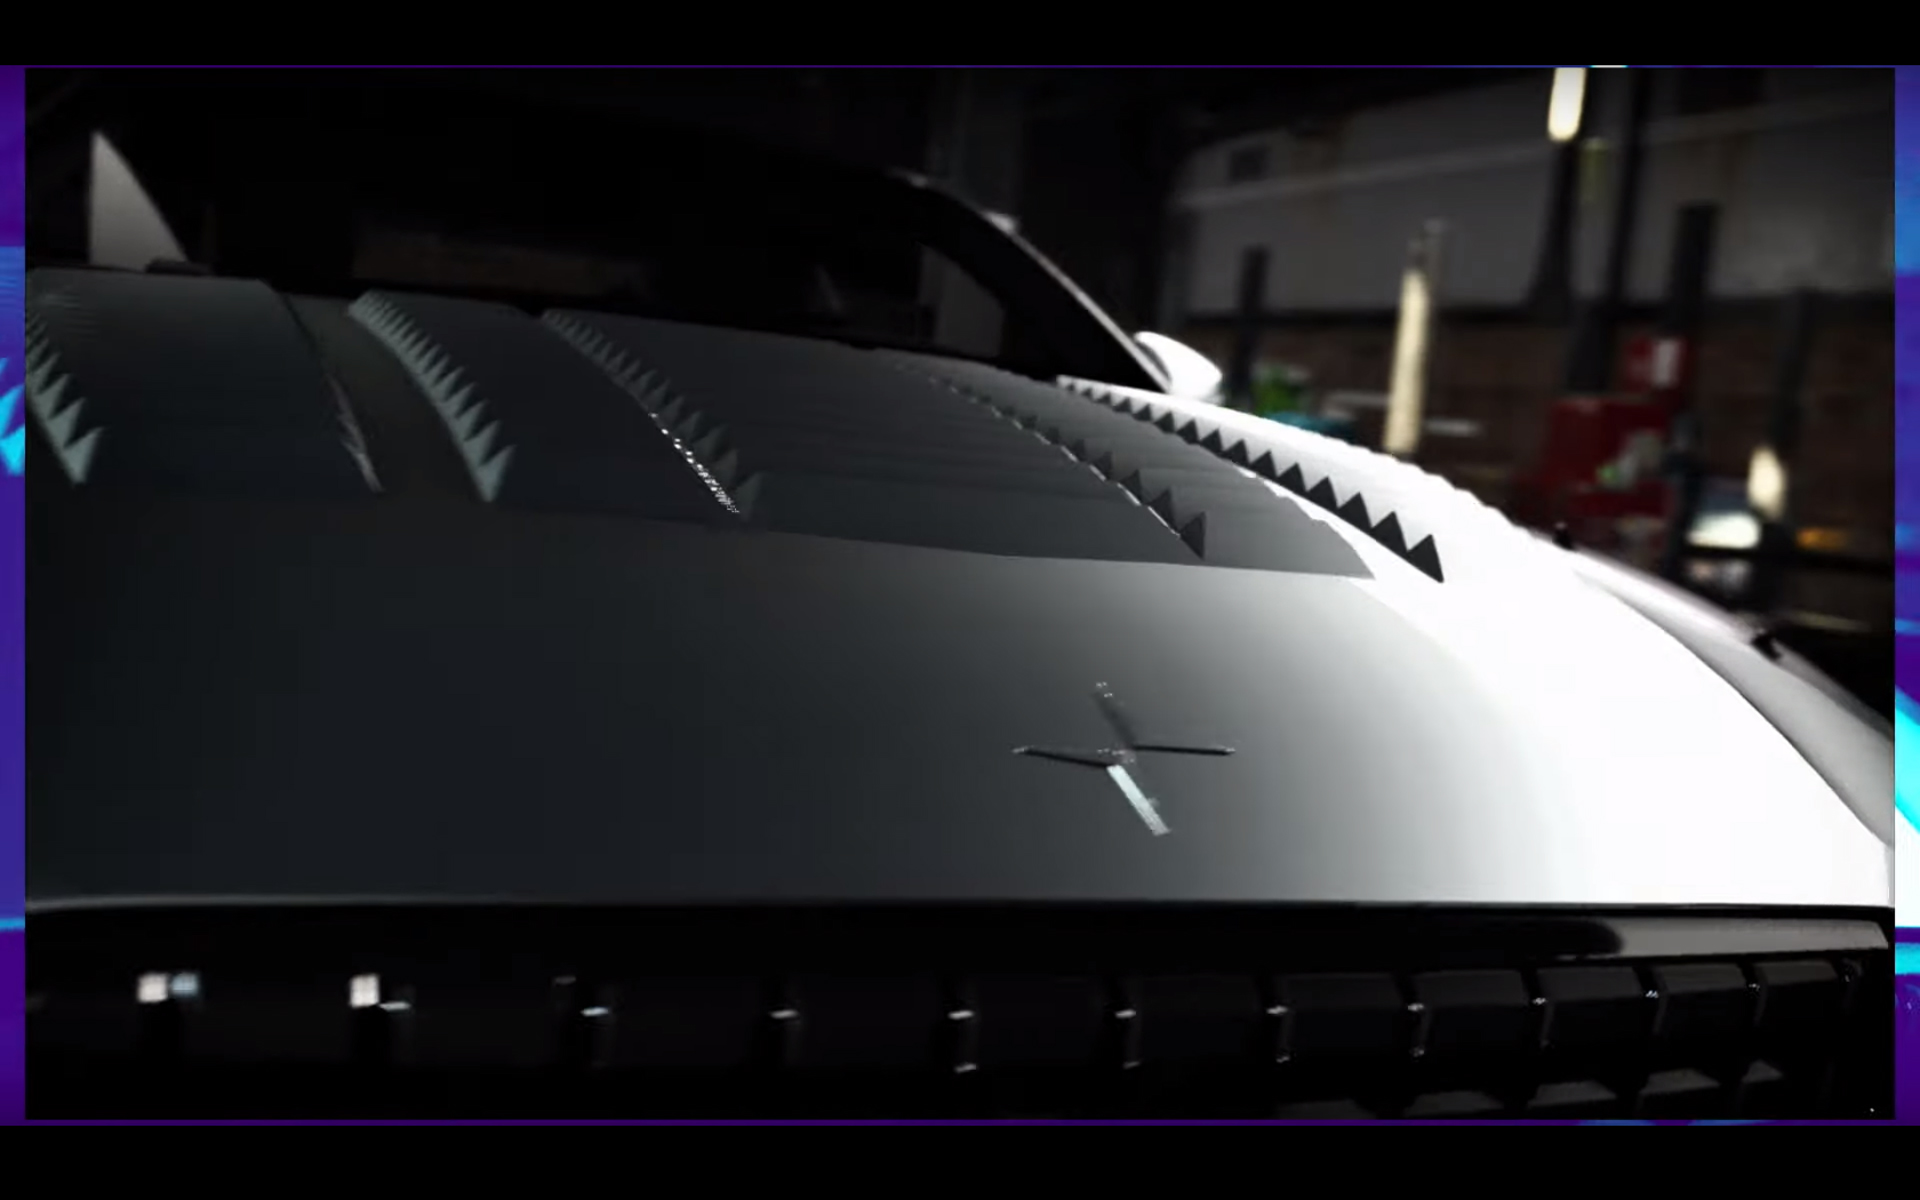 NFS-Heat-2019-screen-trailer-preview-garage-Polestar1-hood-part